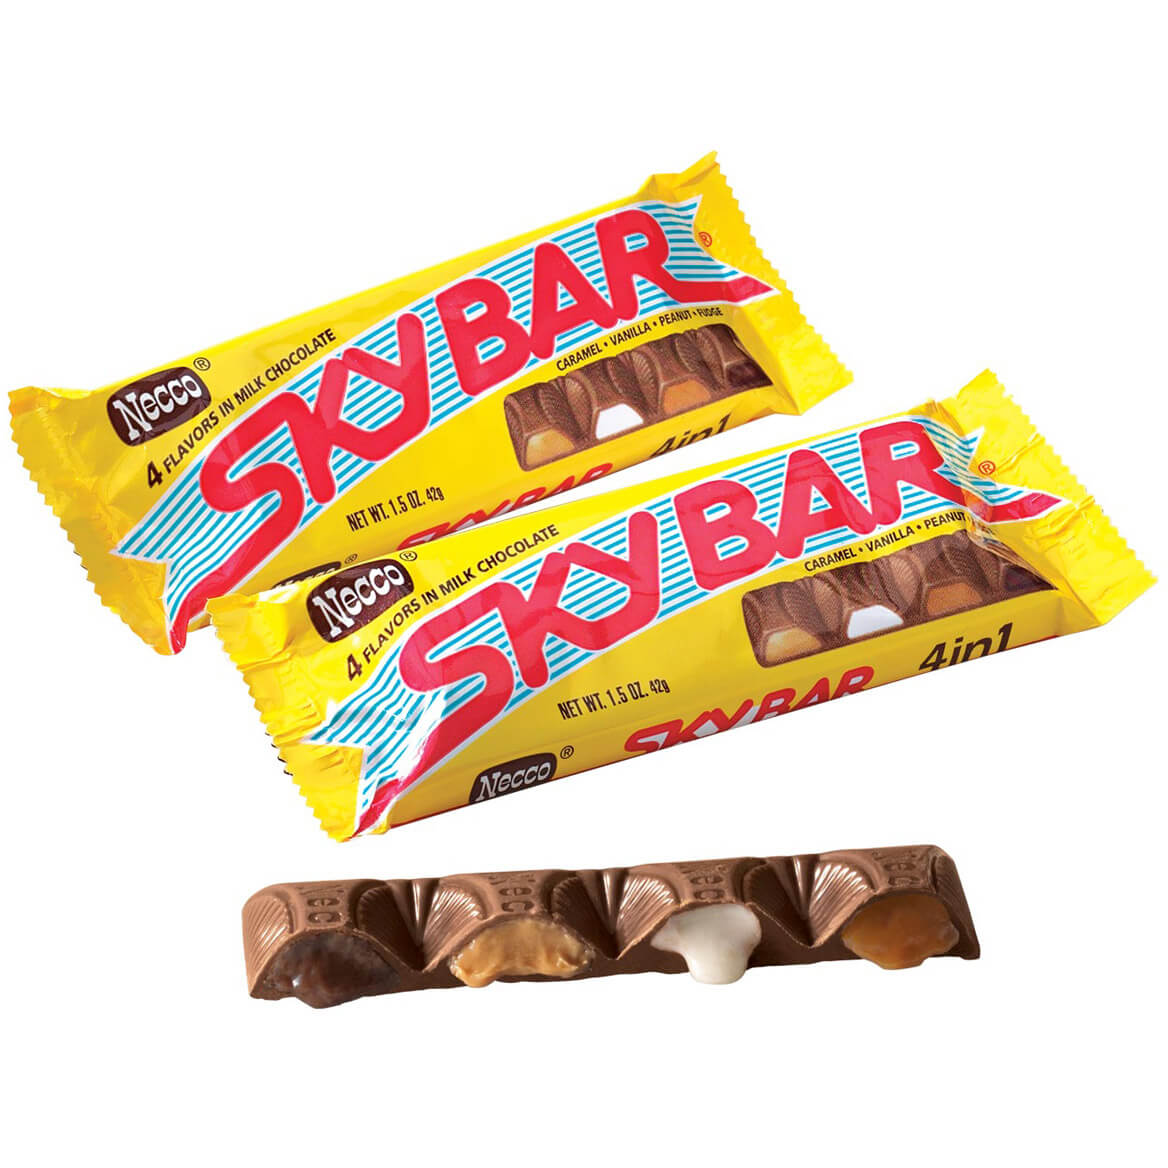 Skybar®, Set of 5